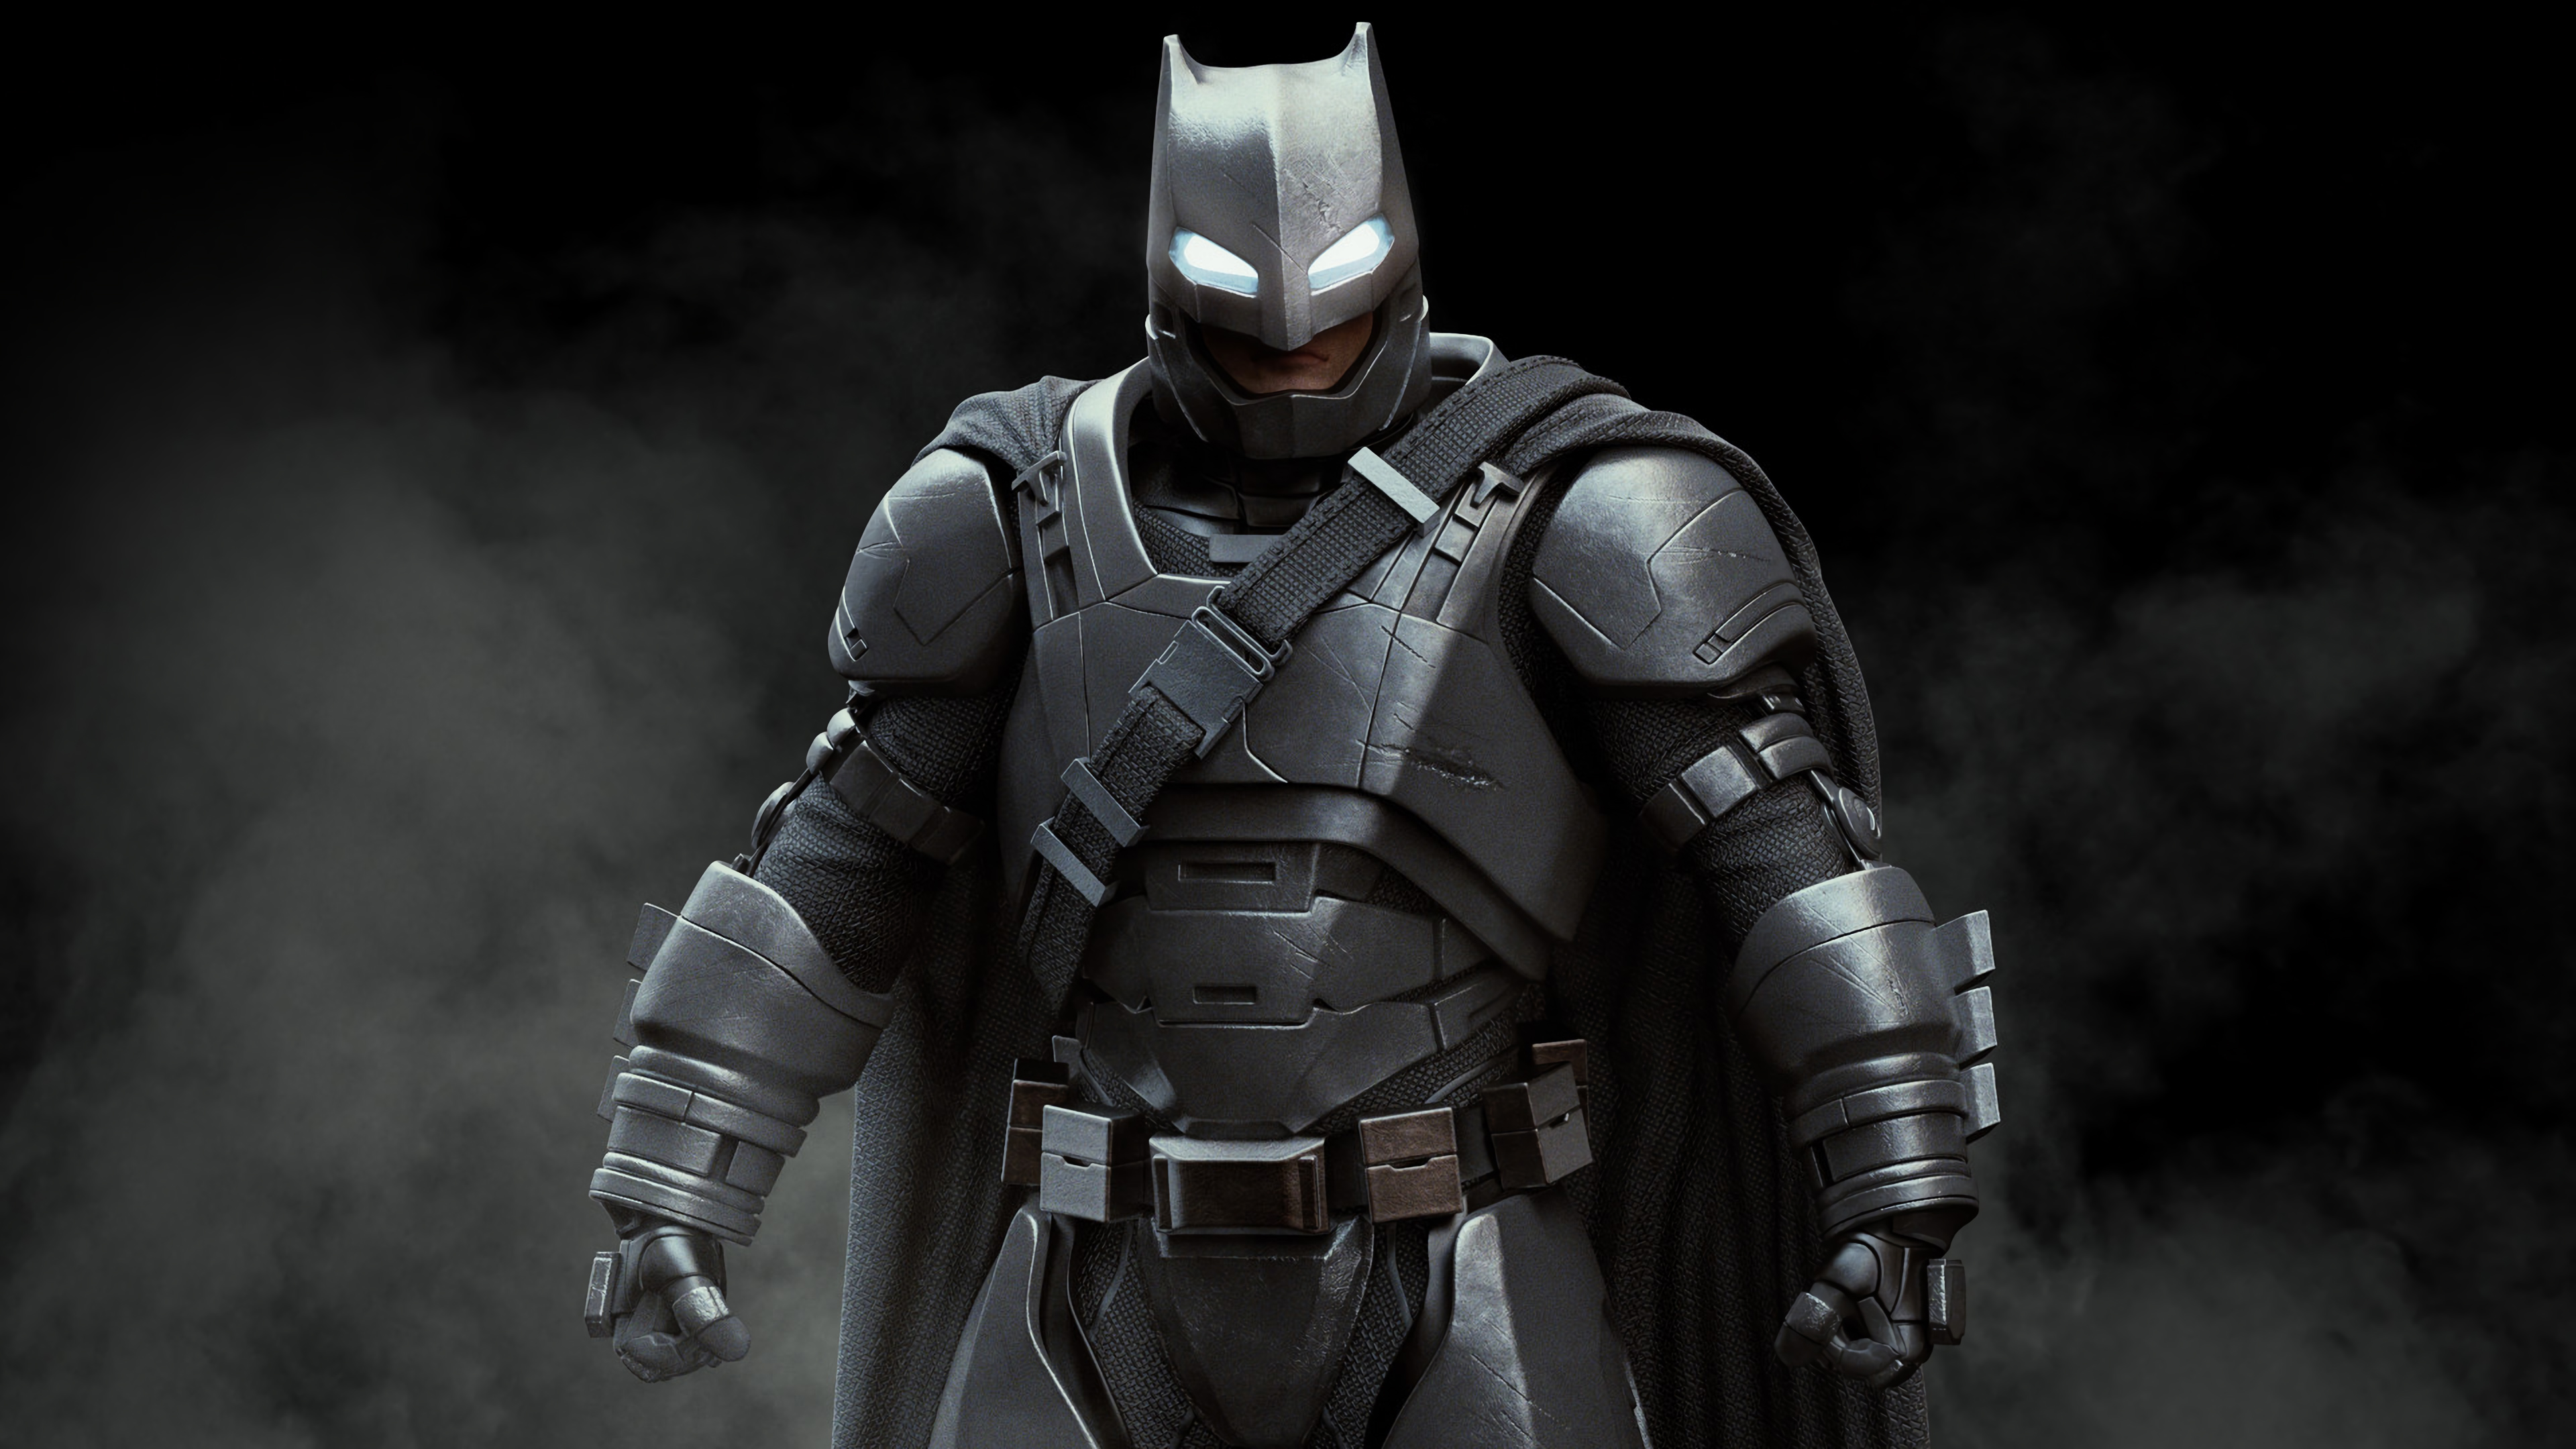 batman armour 1568054092 - Batman Armour - superheroes wallpapers, hd-wallpapers, digital art wallpapers, batman wallpapers, artwork wallpapers, 4k-wallpapers